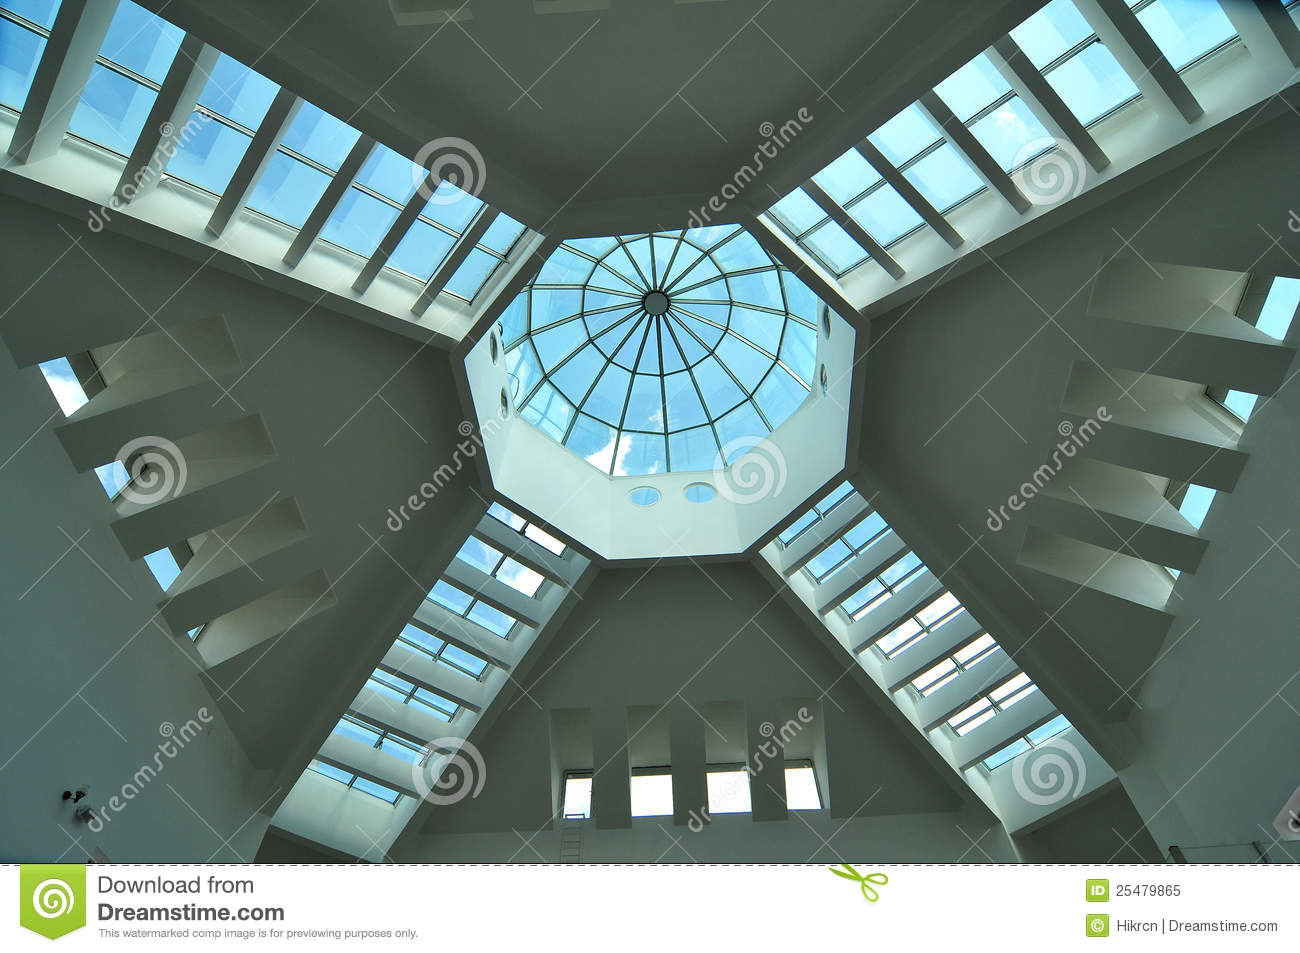 Luxury house Scenery wallpaper 1920x1080 wallpaper additionally Luxury Puppy Collar Lead Set Blue furthermore 331577591296916866 as well Properties for sale likewise Royalty Free Stock Photo Modern Ceiling Design Image25479865. on home luxury house design